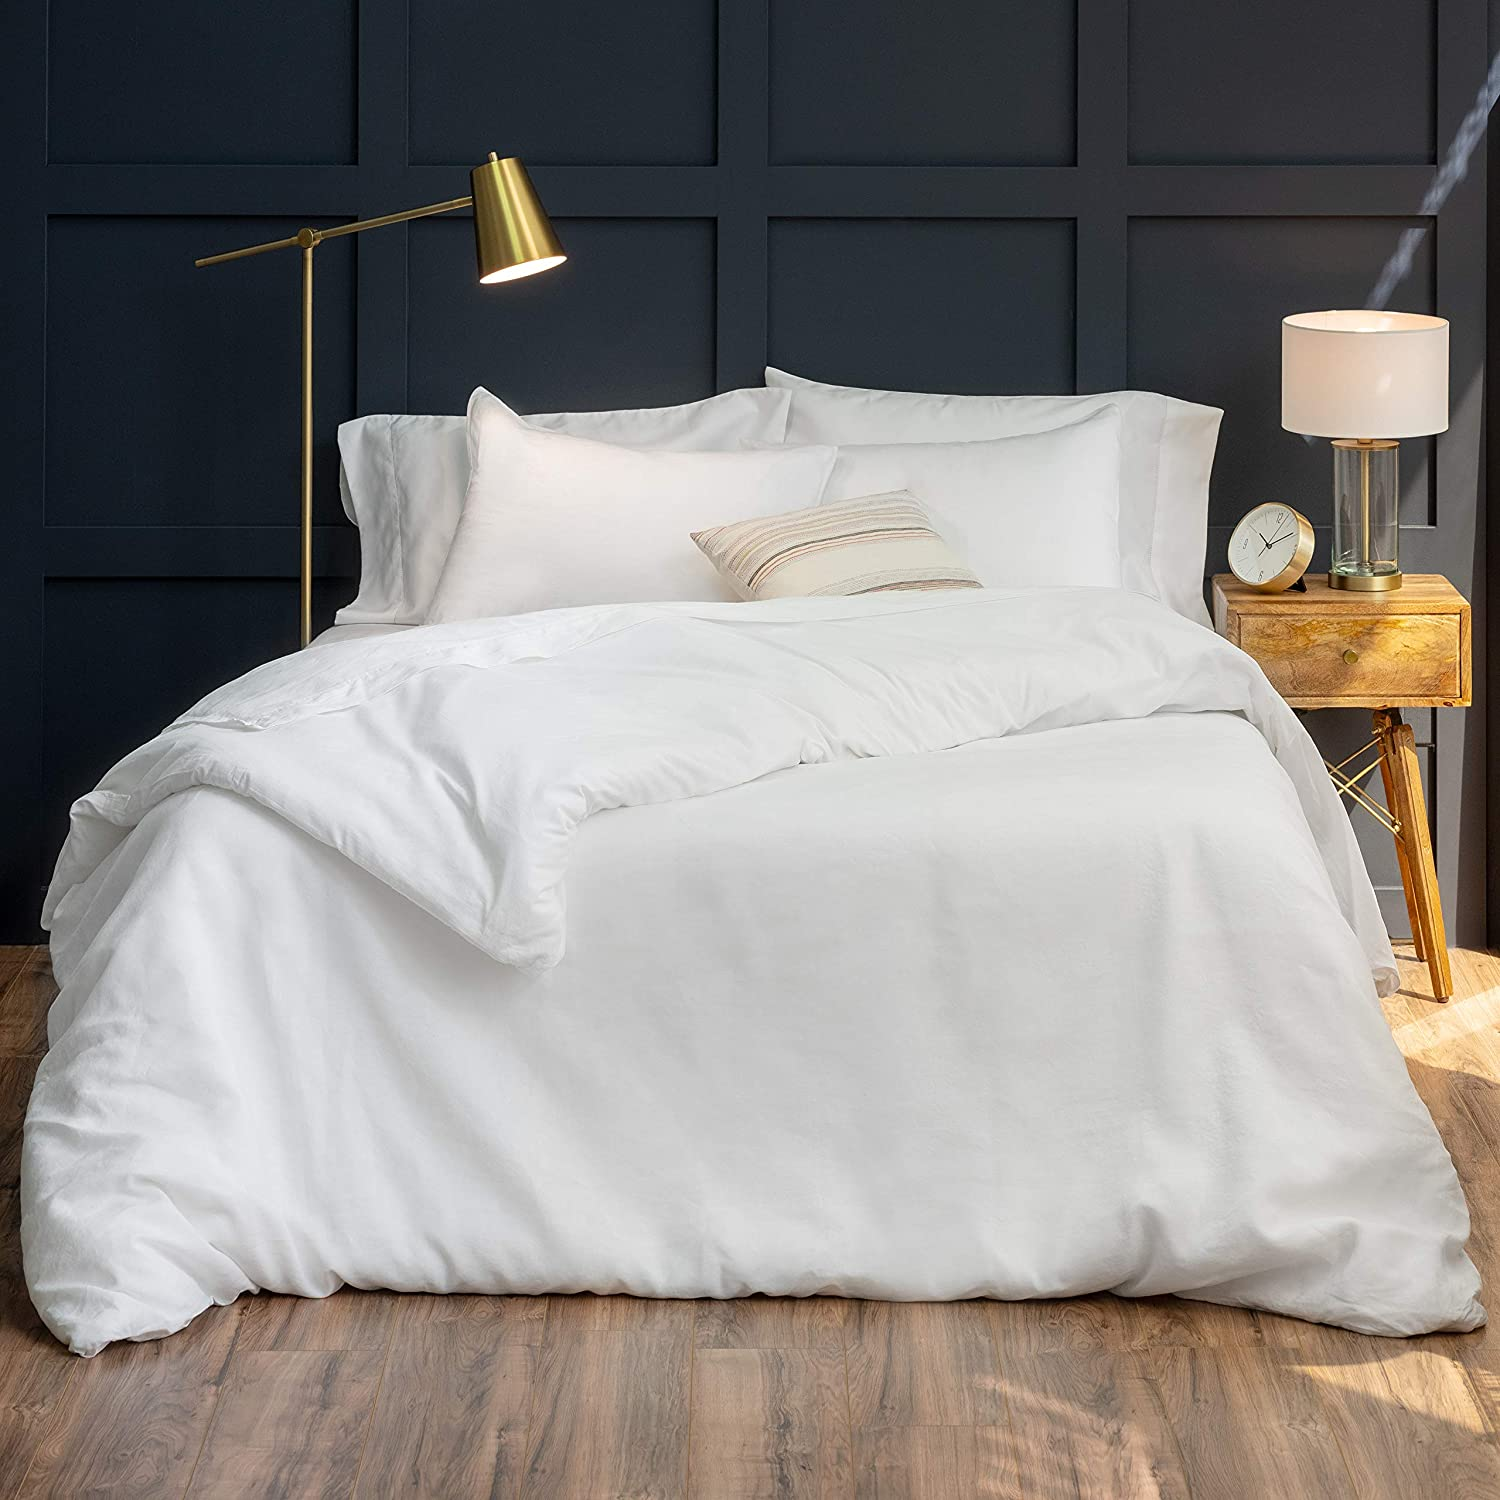 Welhome Premium Al sold out. Relaxed Linen Cotton Duvet Set - Full Outlet ☆ Free Shipping Cover Quee